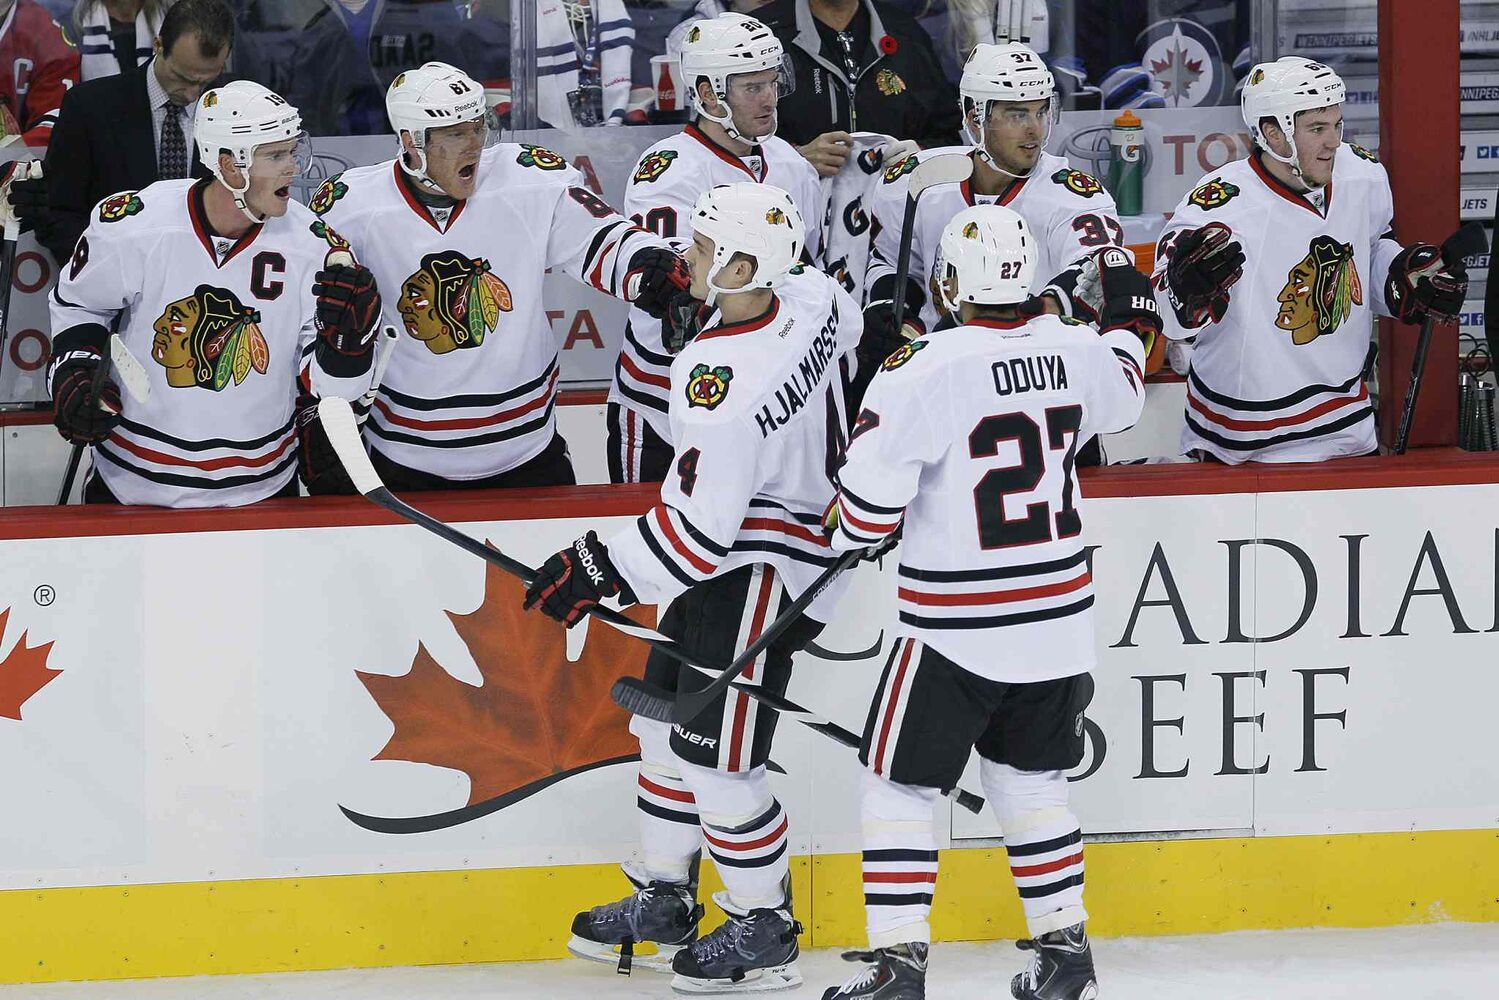 Members of the Chicago Blackhawks celebrate the first-period goal by Niklas Hjalmarsson (bottom left). (John Woods / The Canadian Press)